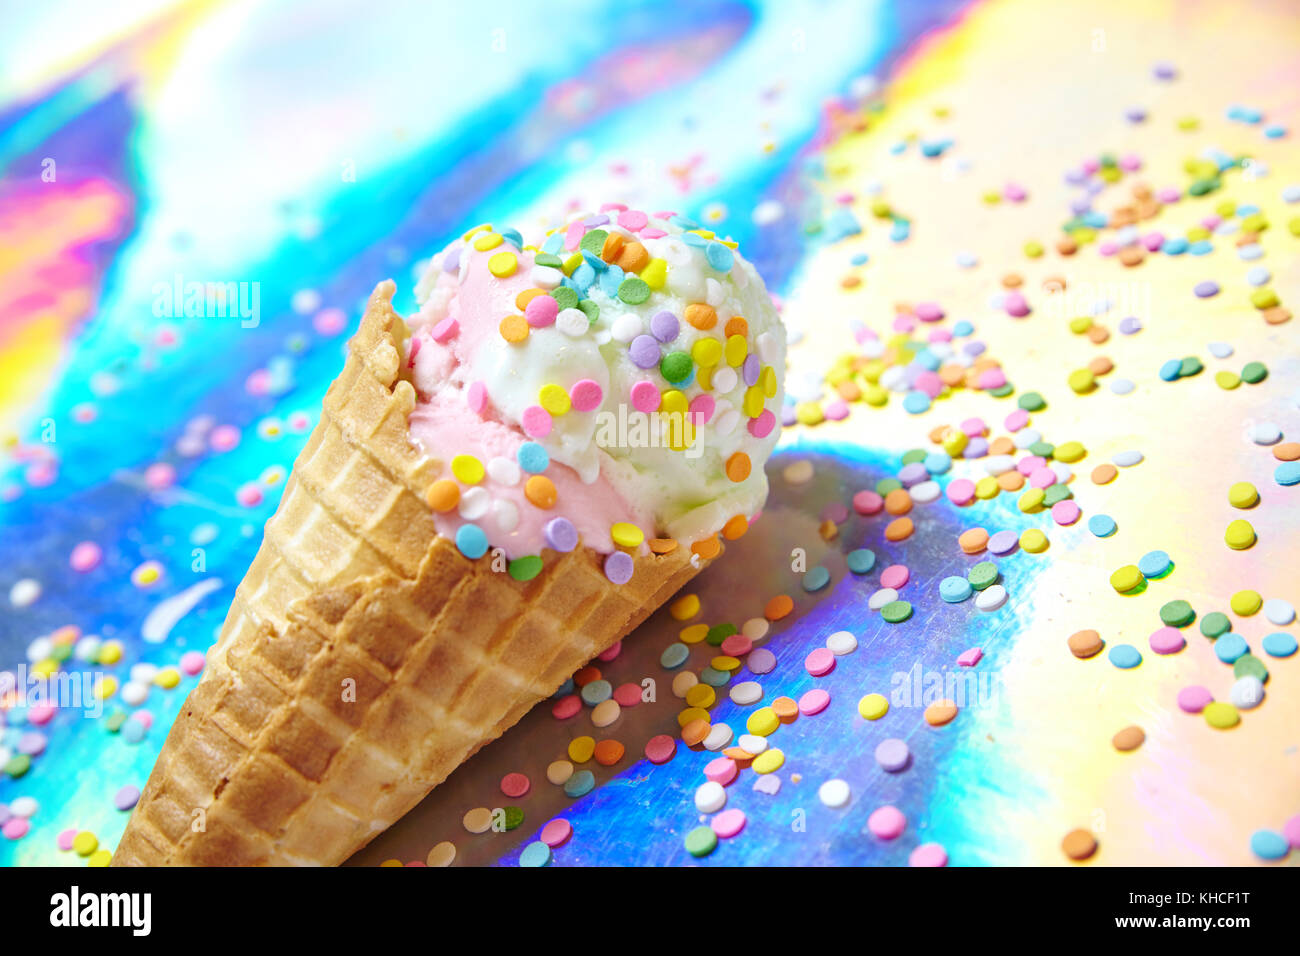 Rainbow Ice Cream Sprinkle Cone on Colorful Paper - Stock Image